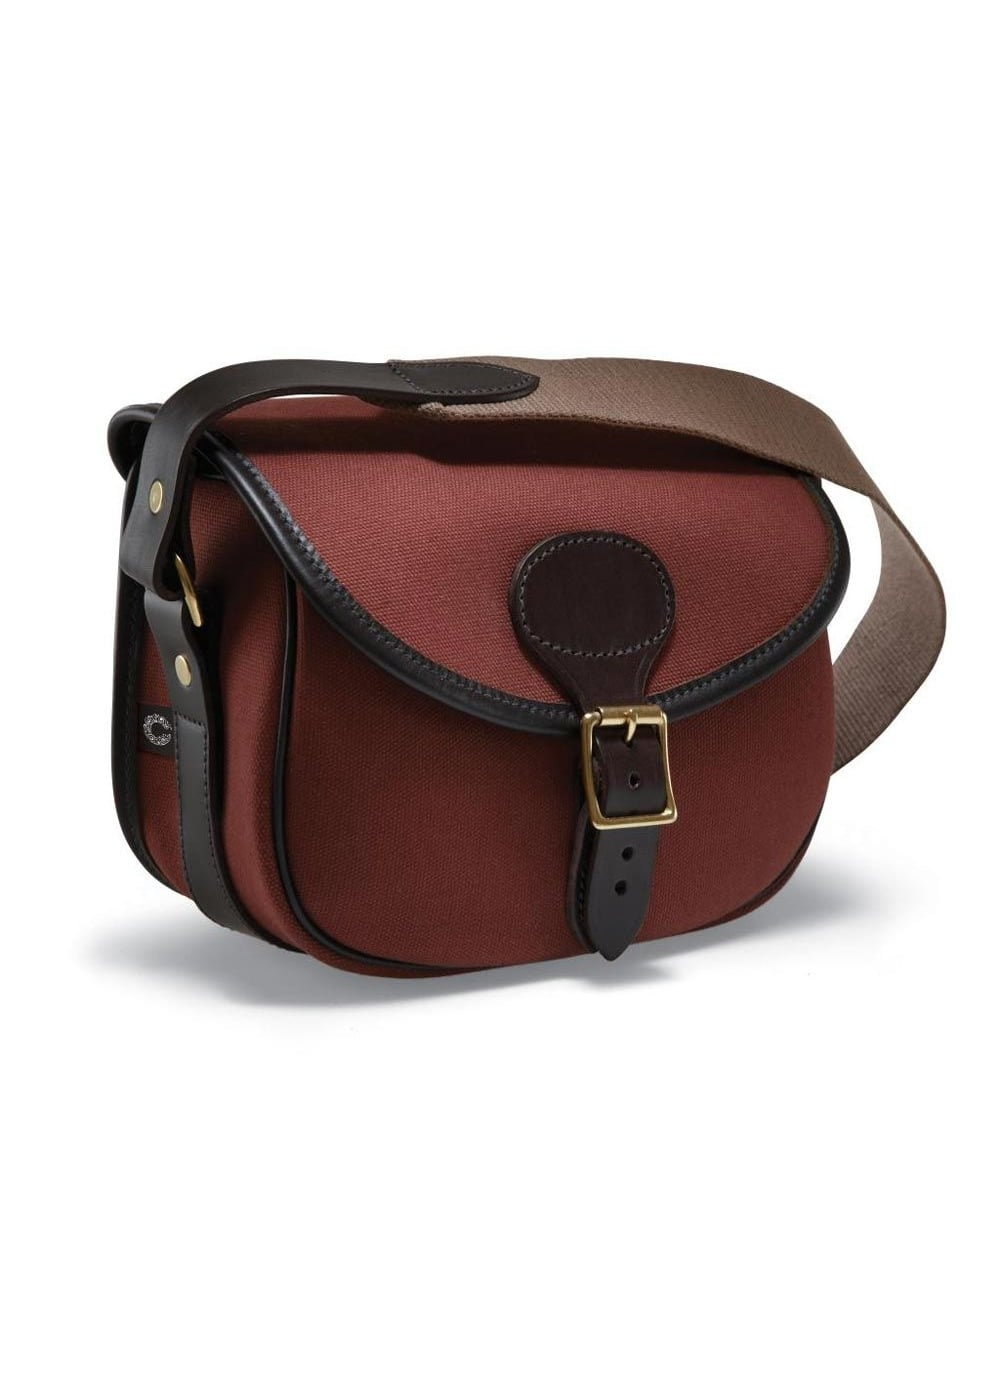 Croots Rosedale Canvas Cartridge Bag - Mens from A Hume UK